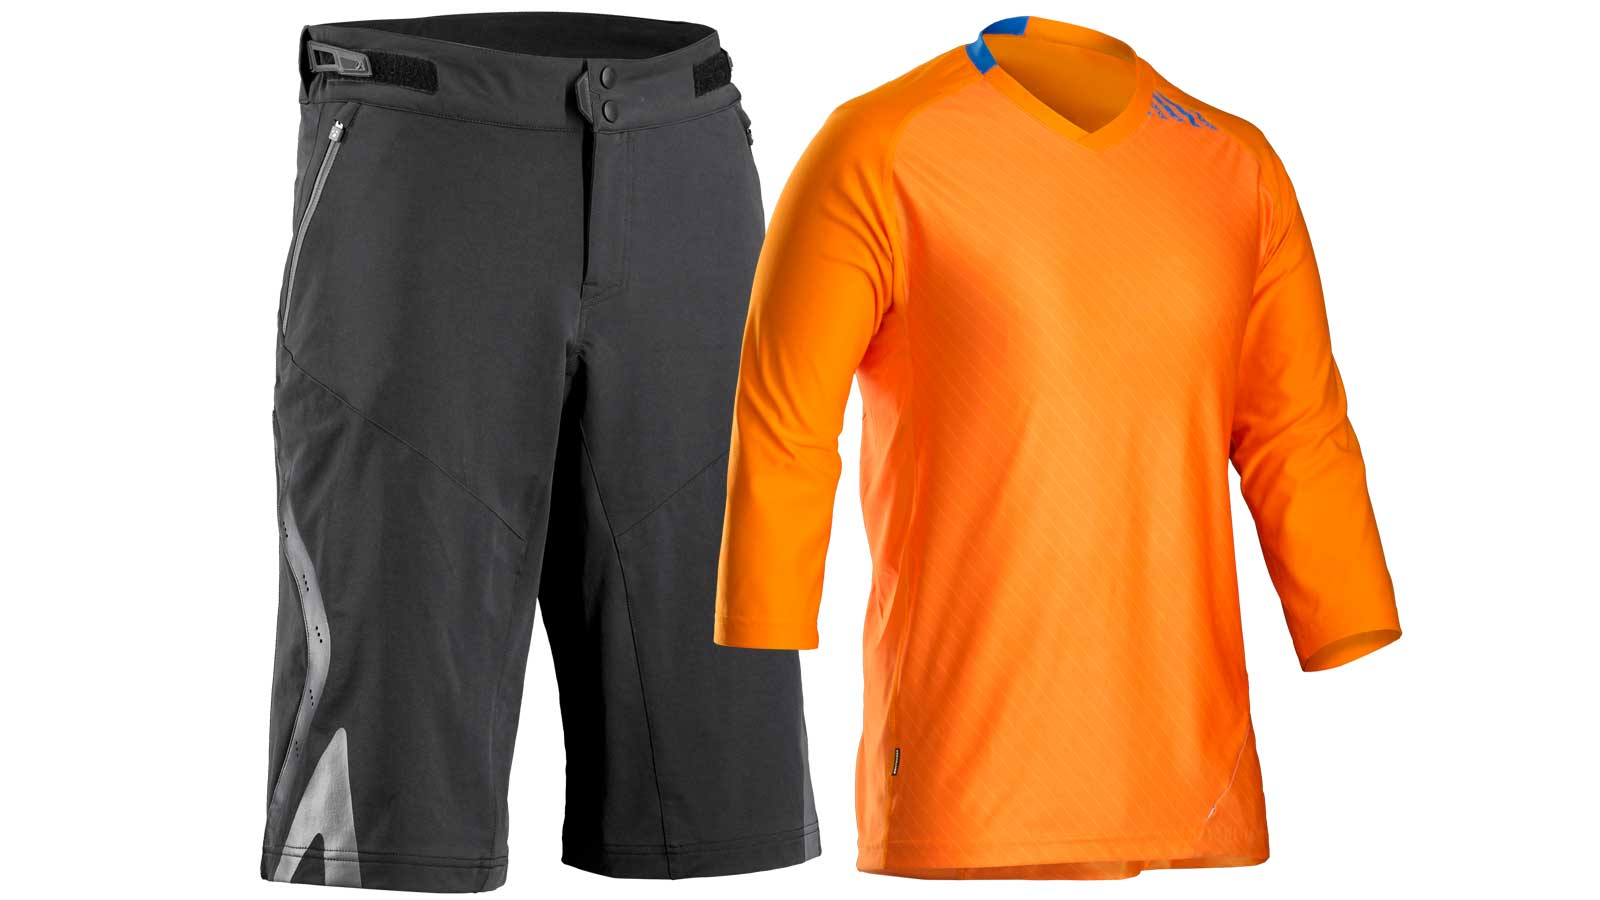 bontrager-lithos-shorts-rhythm-shirt